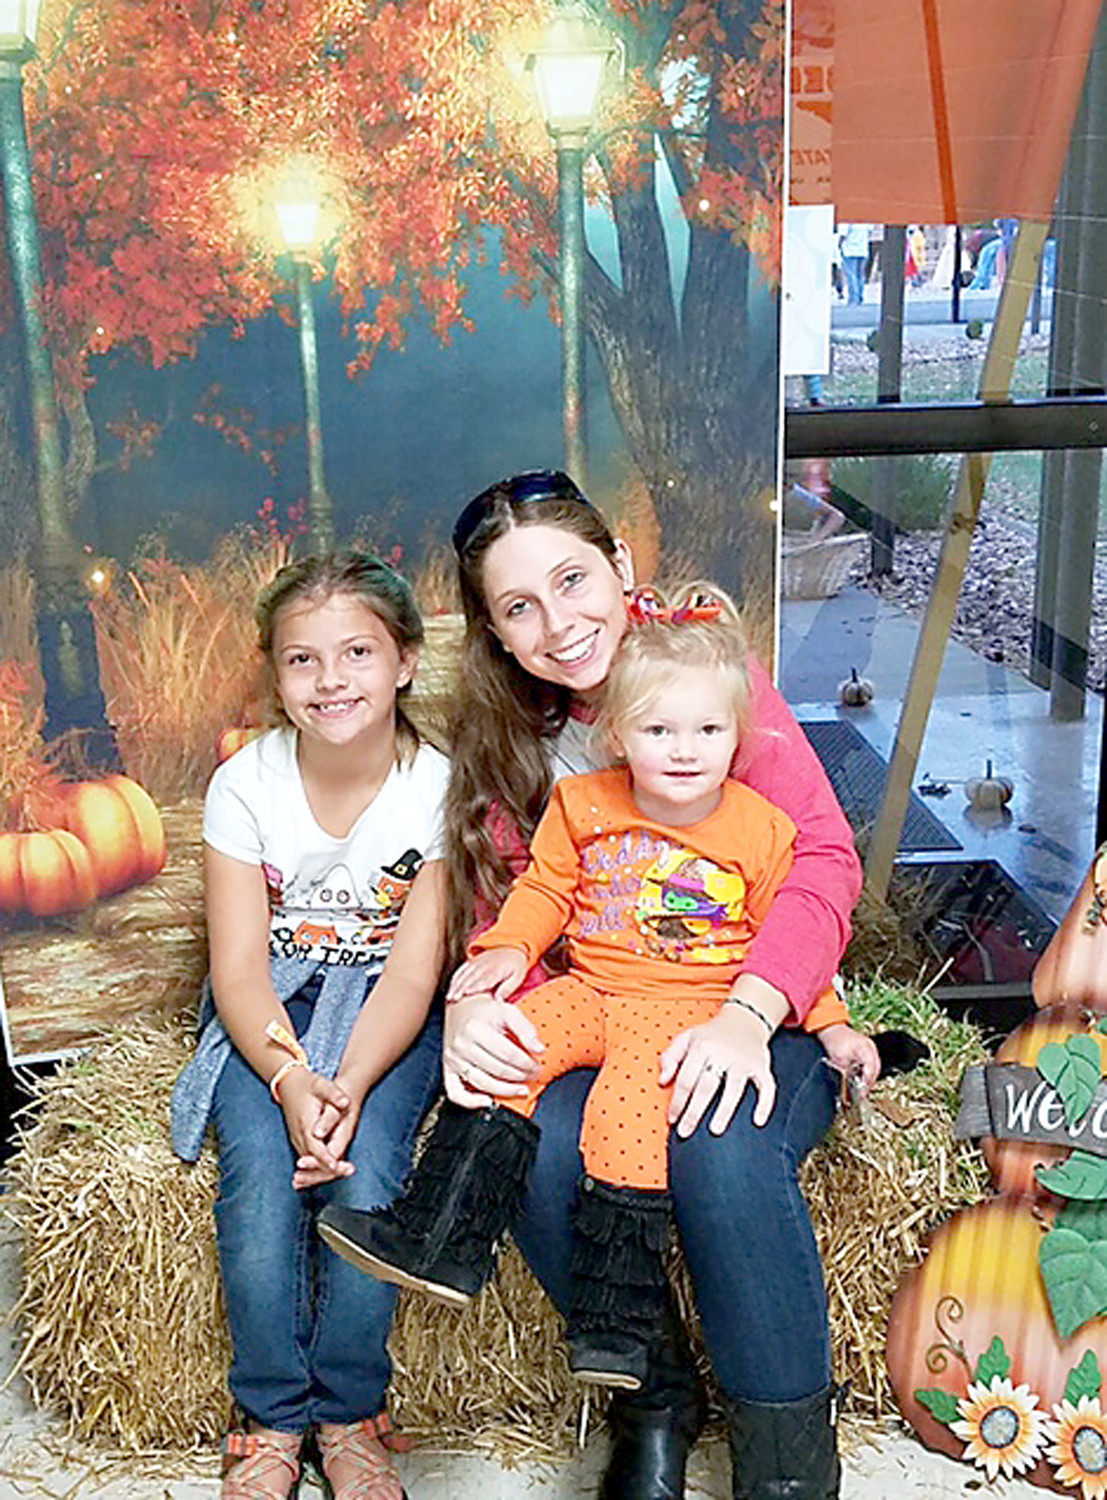 THE BURNETTE FAMILY poses for a festive fall photo during Michigan Avenue Elementary School's Fall Festival.